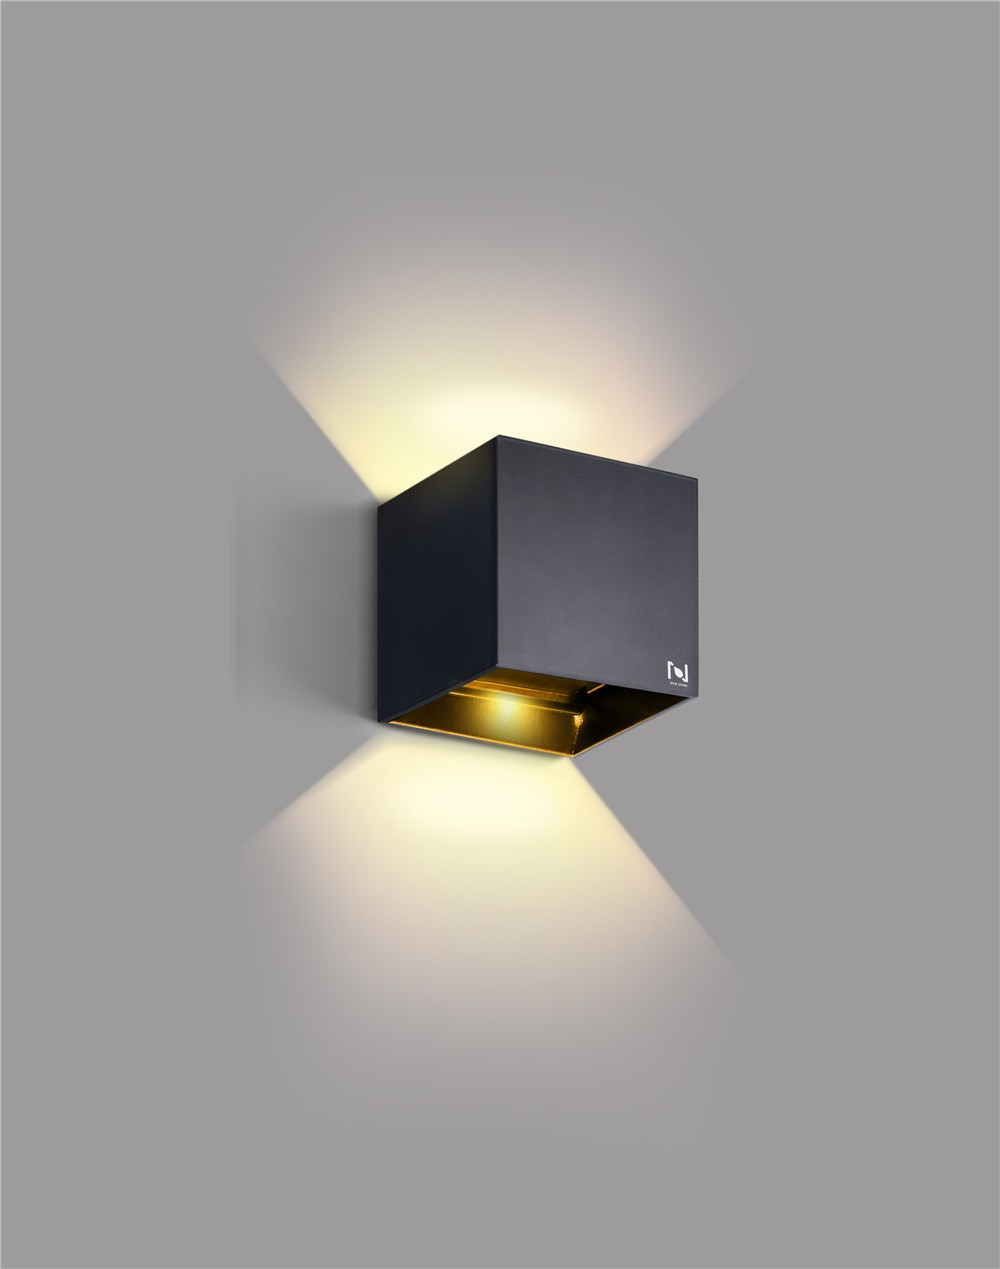 New design 6w square led wall light LL031206